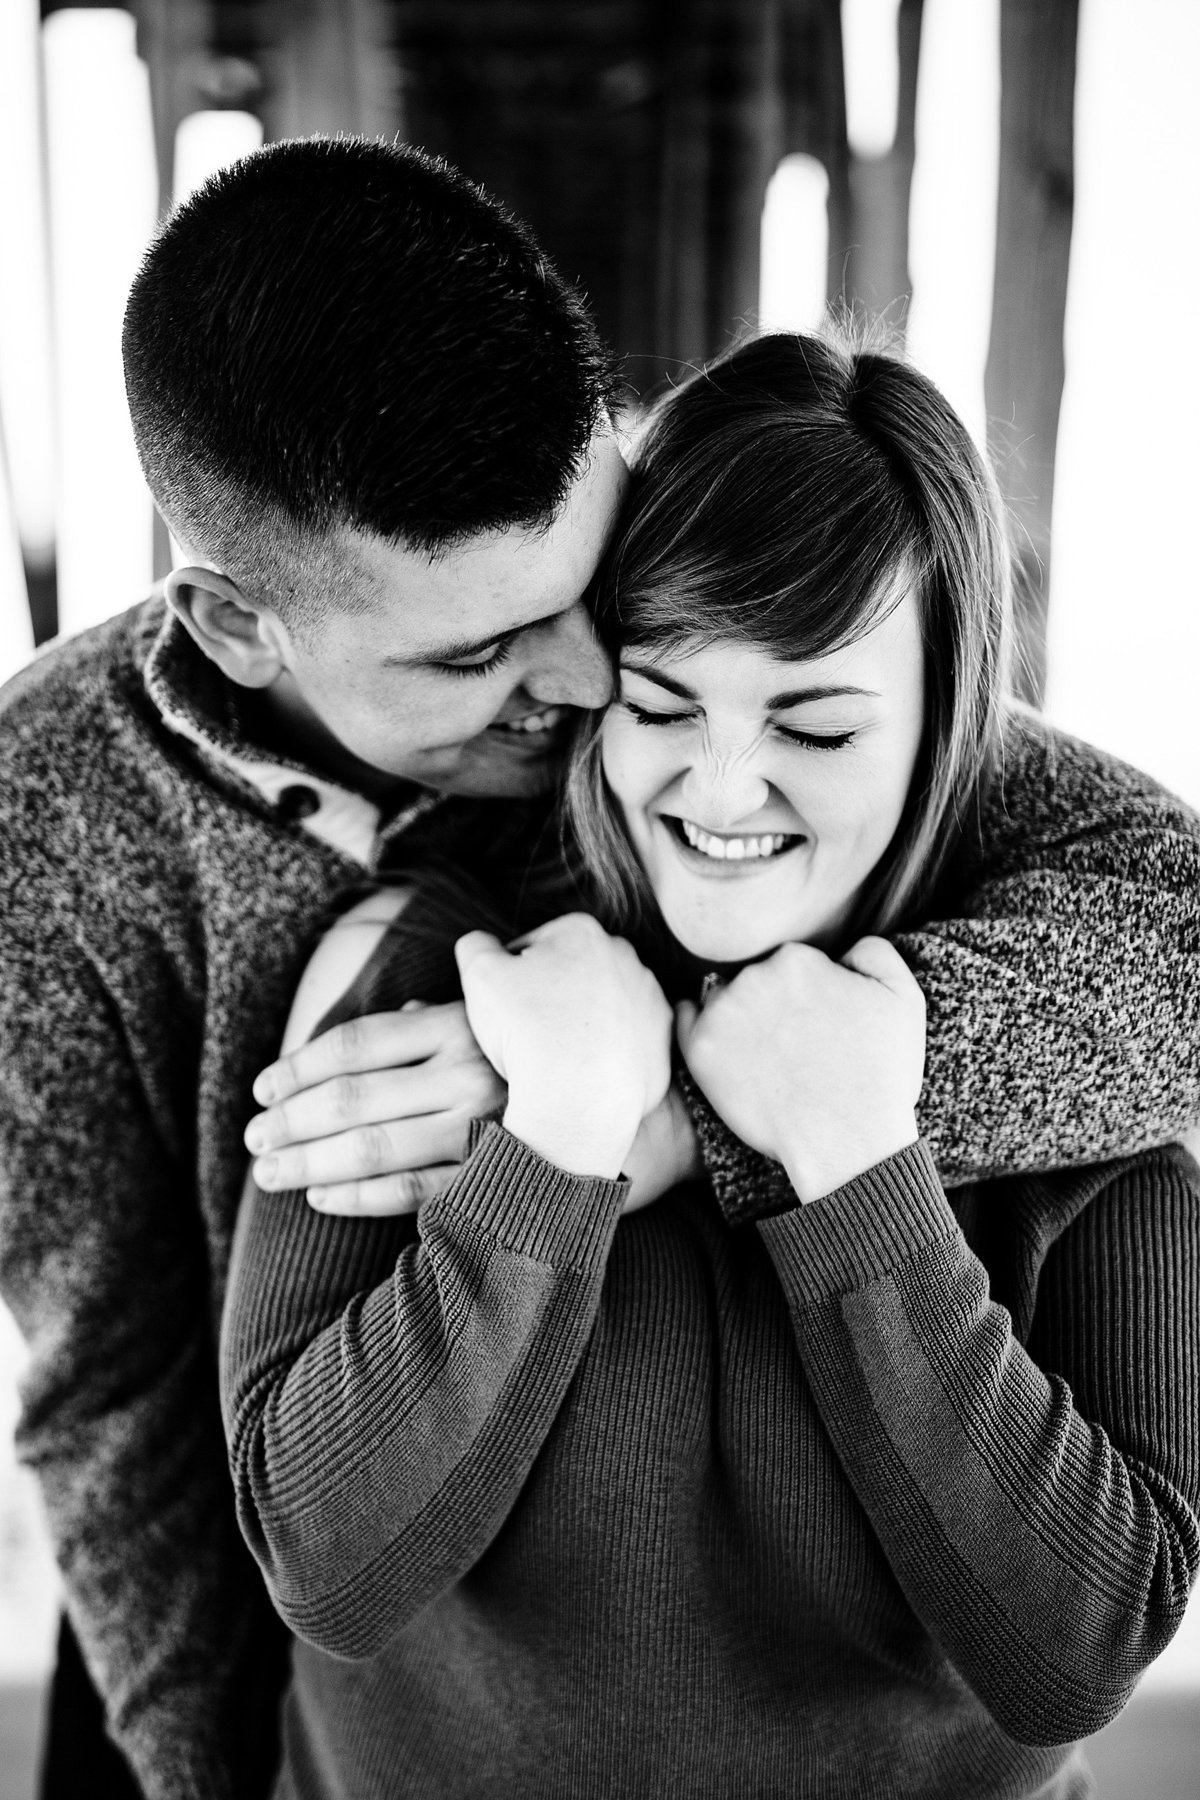 ocean-city-beach-engagement-session-rebecca-renner-photography_0009